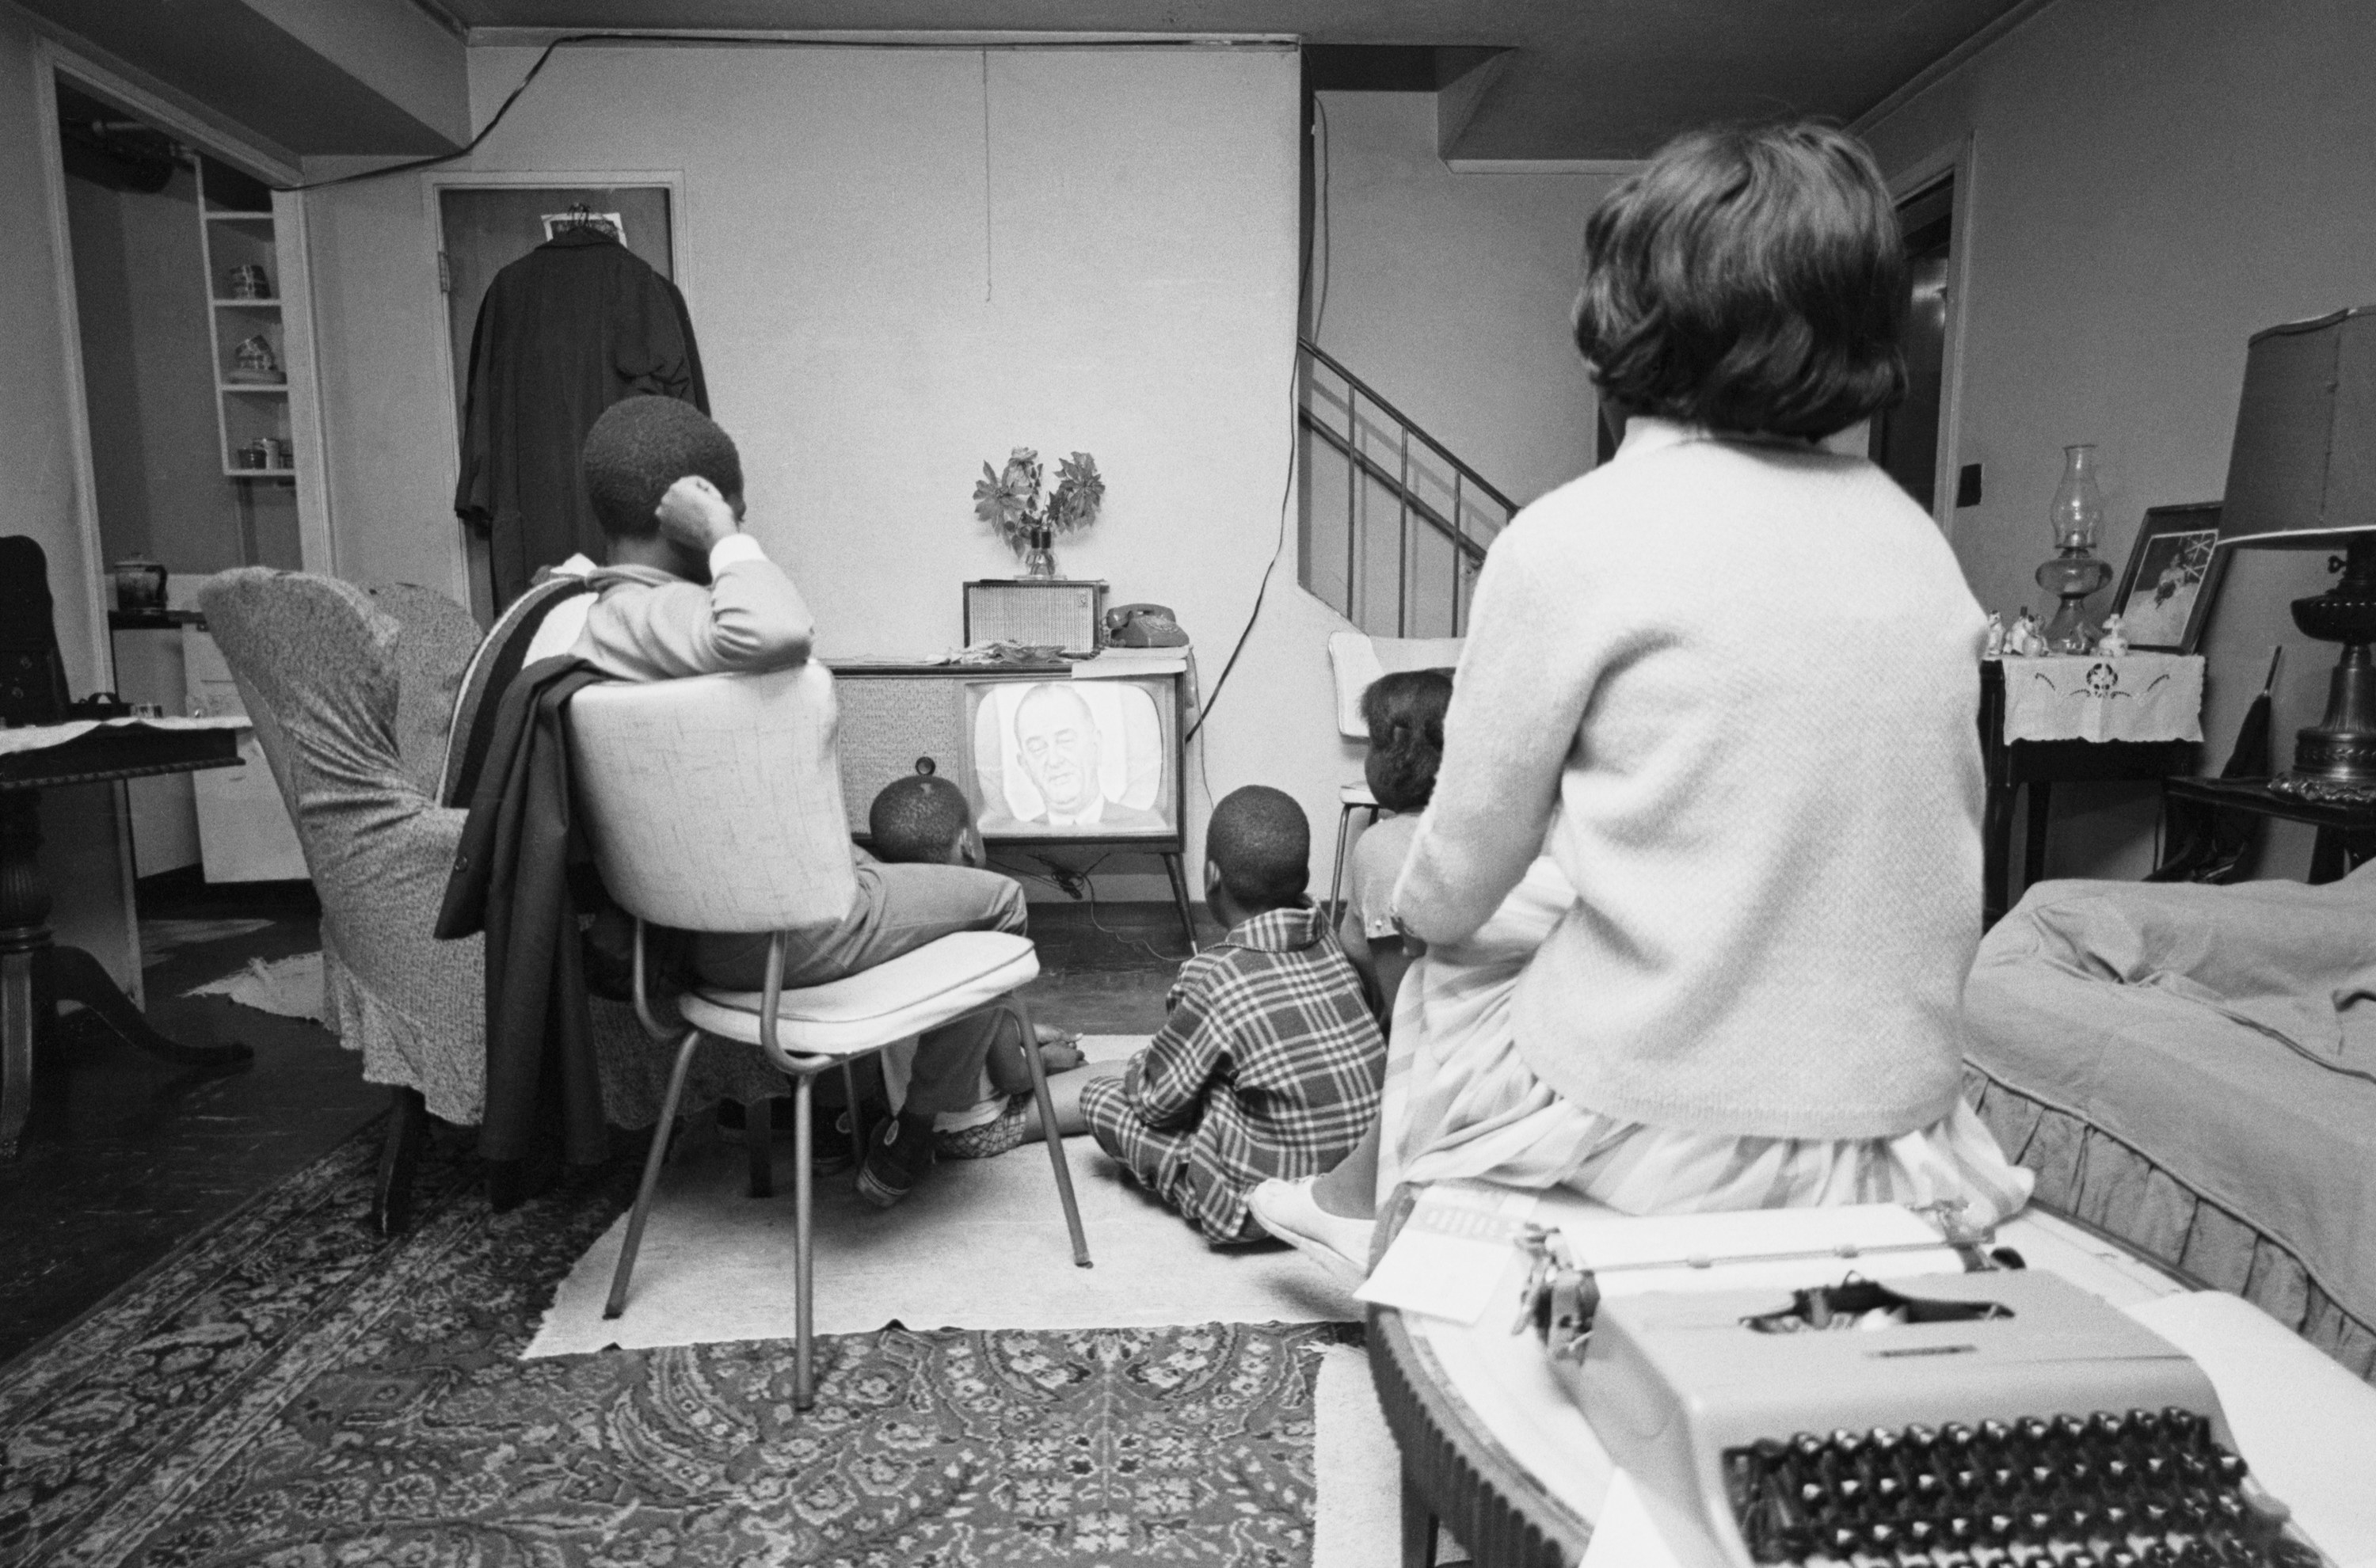 A Black family is seen in a living room watching television